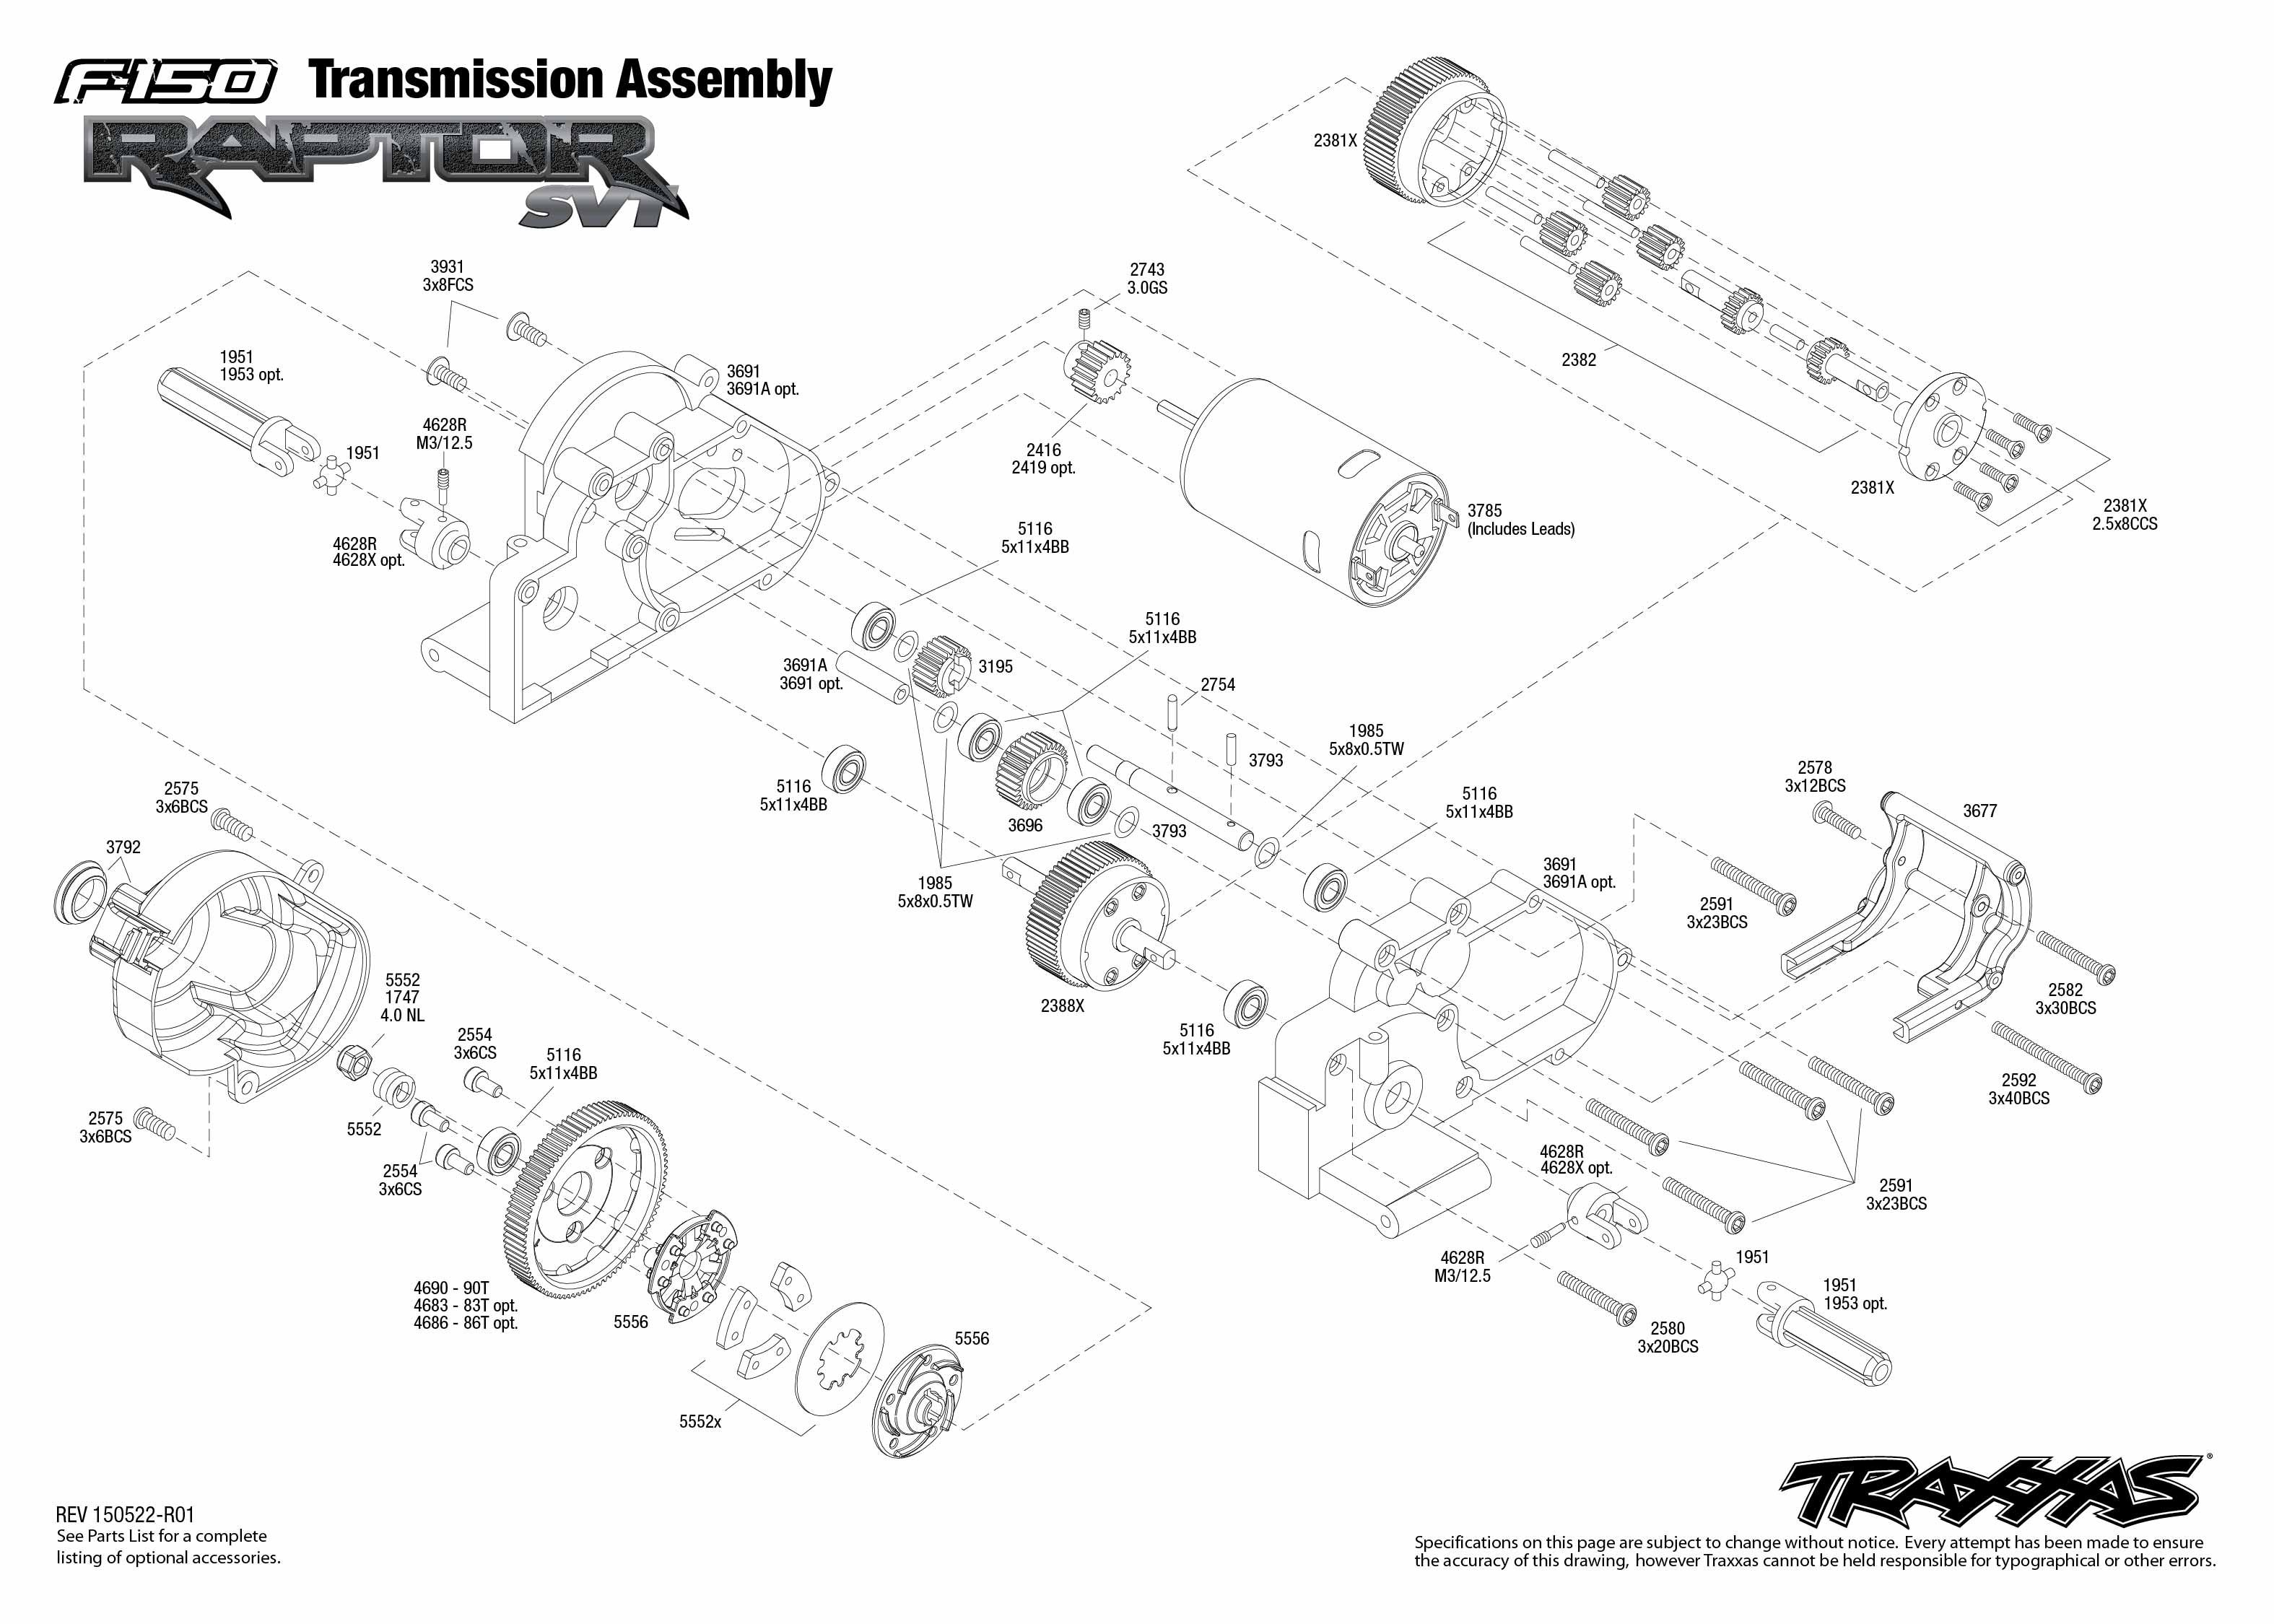 1998 ford contour svt radio wiring diagram motorcycle alarm system raptor 58064 1 transmission assembly traxxas